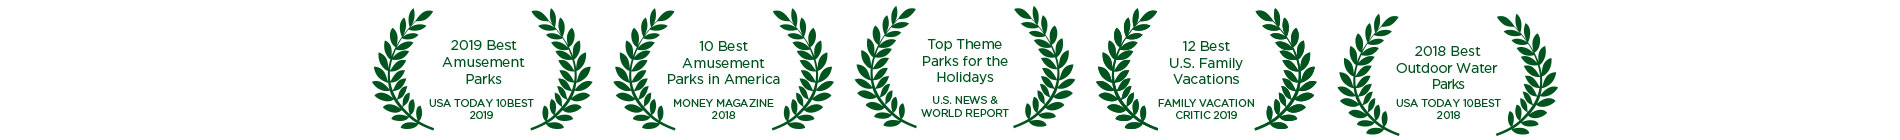 Busch Gardens Williamsburg | 2018 Best Amusement Parks - USA 10Best 2018 | 19 Best Amusement Parks in America - Money Magazine 2018 | Top Theme Parks for Holidays - U.S. News & World Report | 12 Best U.S. Family Vacations - Family Vacation Critic 2019 |Top Spring Break Destinations for Families - Tips for Family Trips 2018